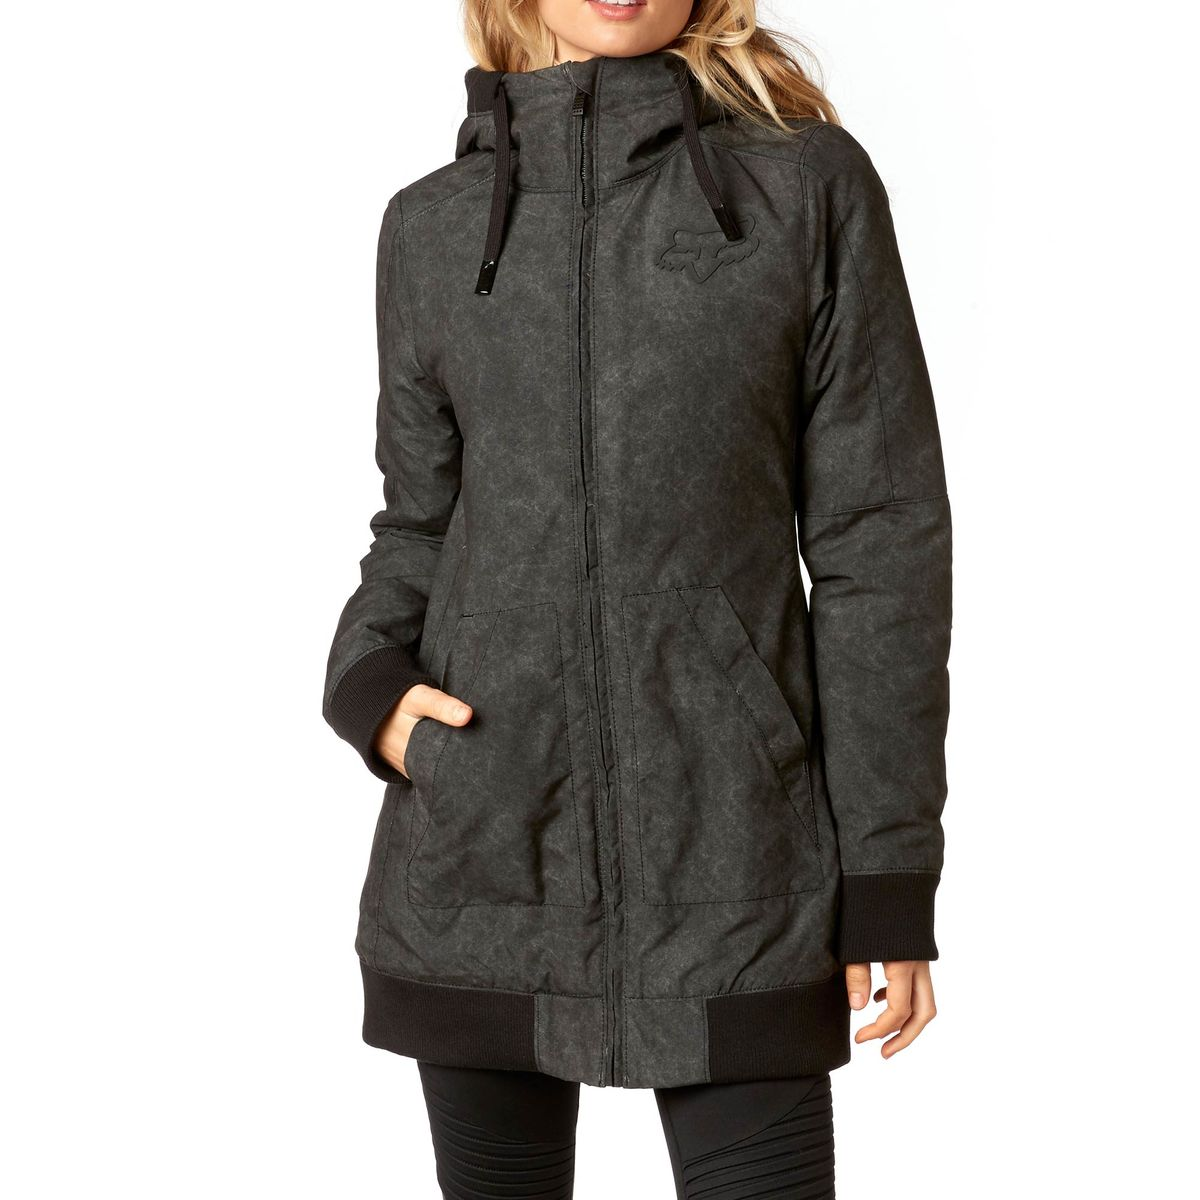 METRICK SHERPA LINED JACKET women's coat